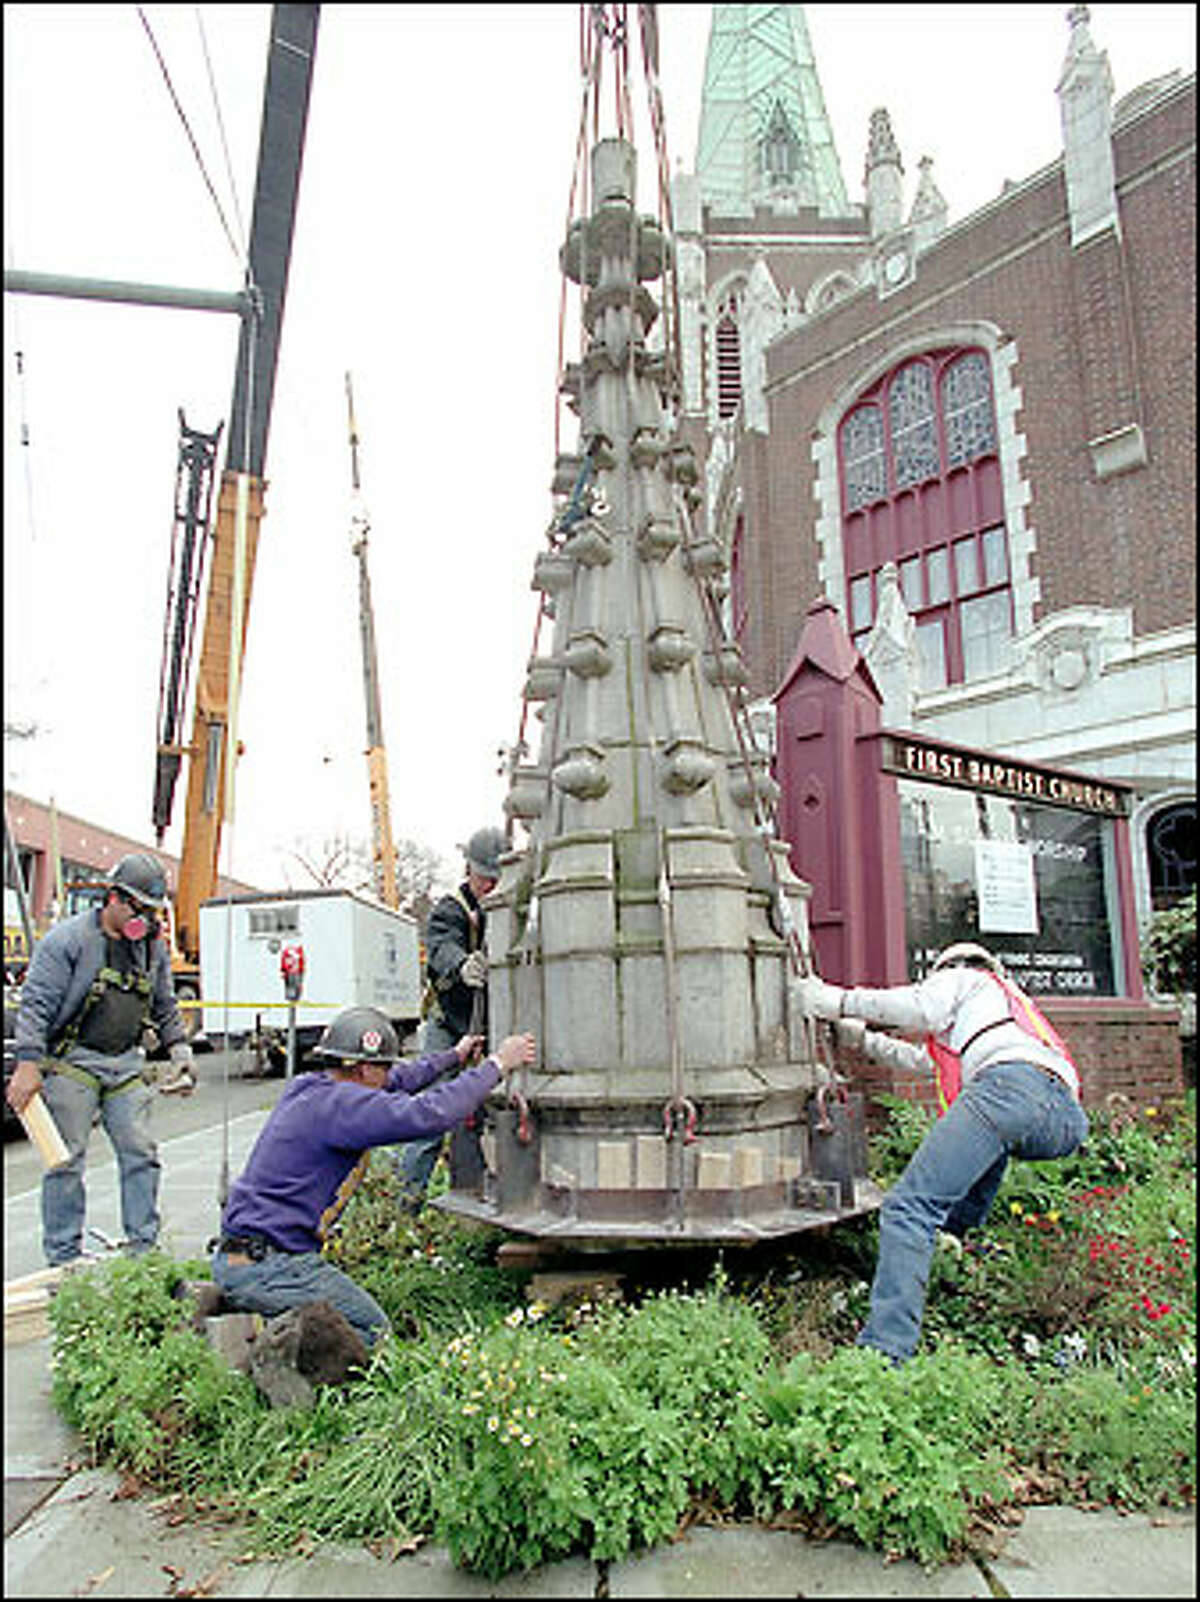 Workers from Nuprecon Demolition in Redmond lower one of four earthquake-damaged spires that flank the bell tower at Seattle's First Baptist Church to a temporary location at the corner of Seneca St. and Harvard Ave. Each spire is about 20 feet tall and weighs about 8,000 pounds.